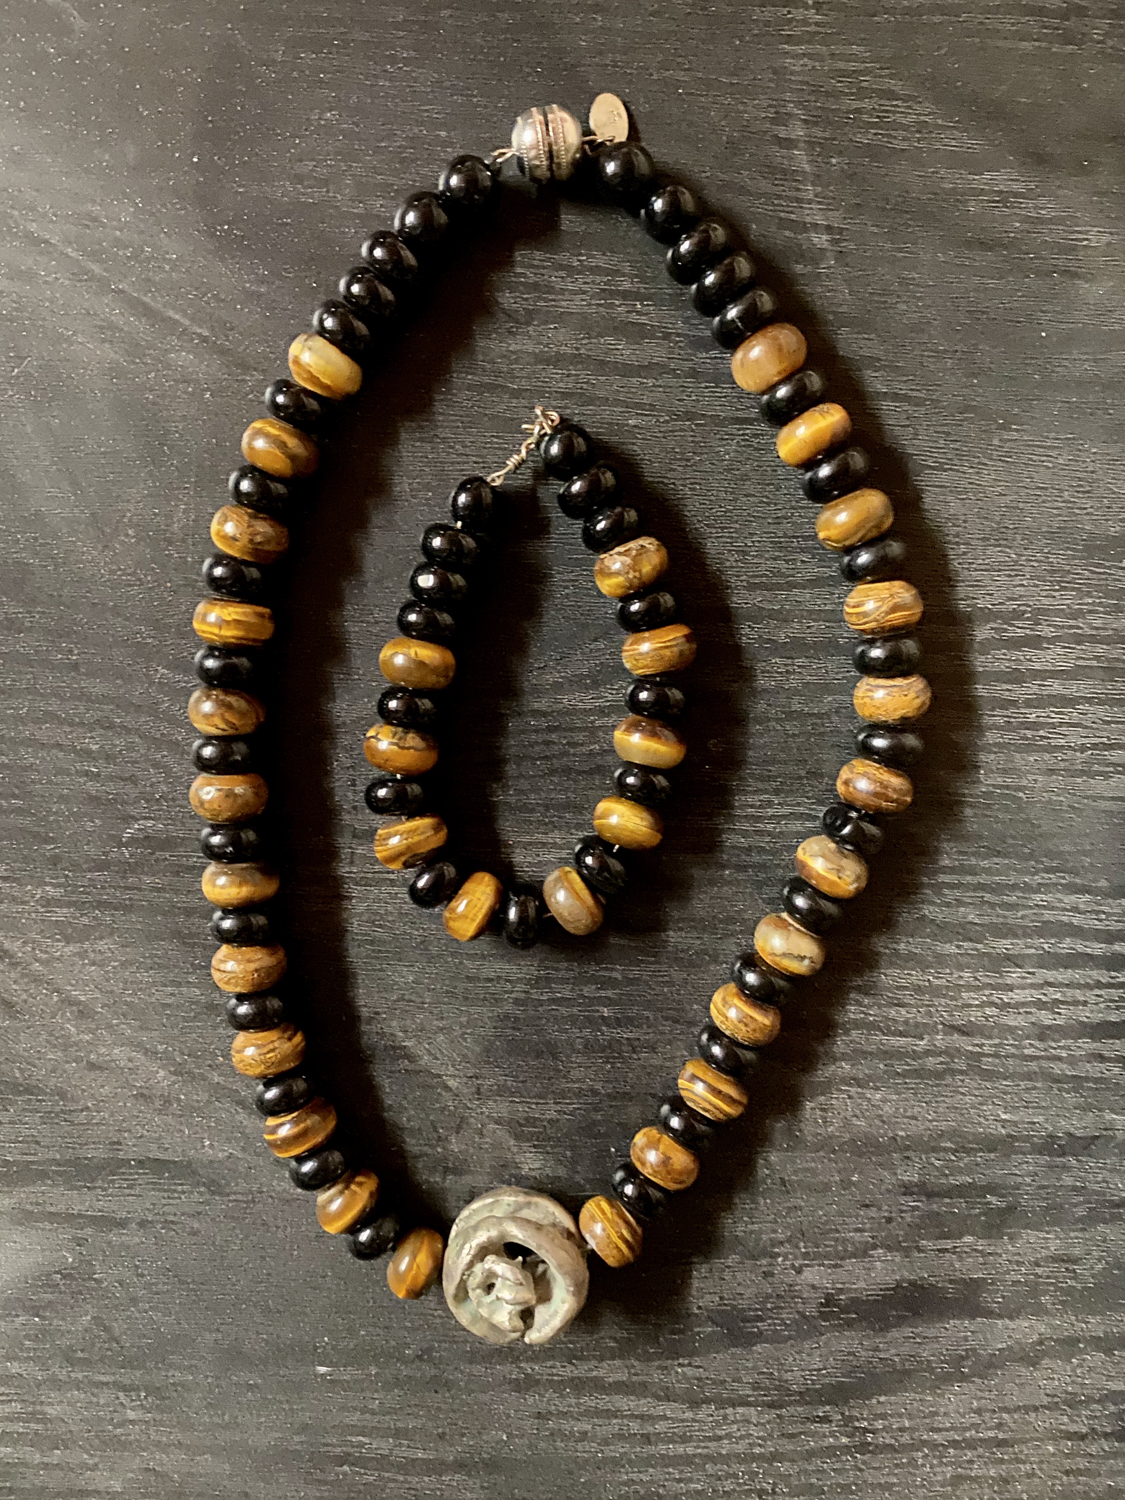 Item 146 - Guttin, Black beads with tigers eye necklace and bracelet